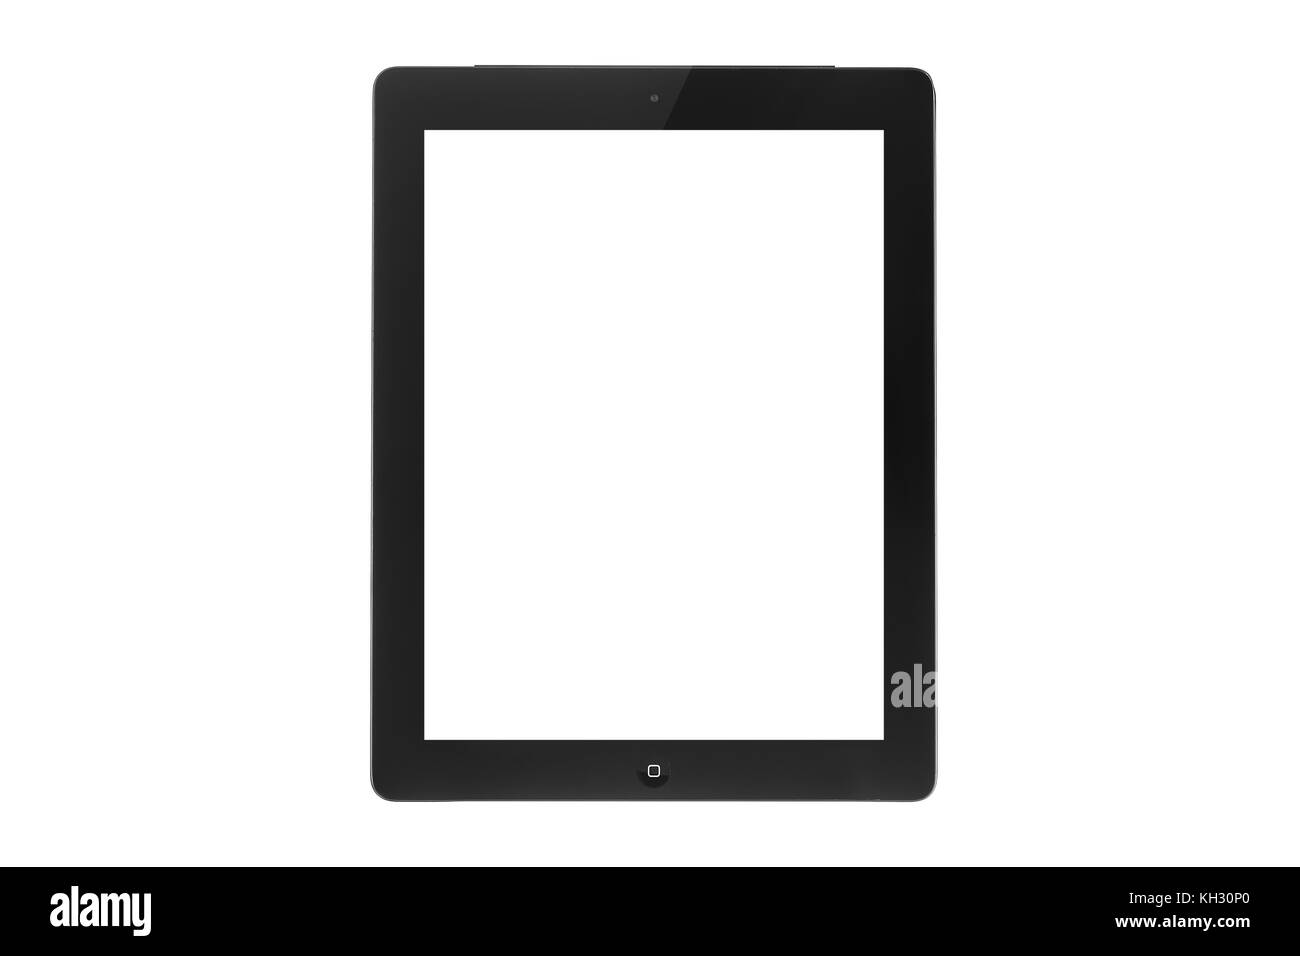 Black touch screen tablet in iPad style with blank screen area for copy space. - Stock Image